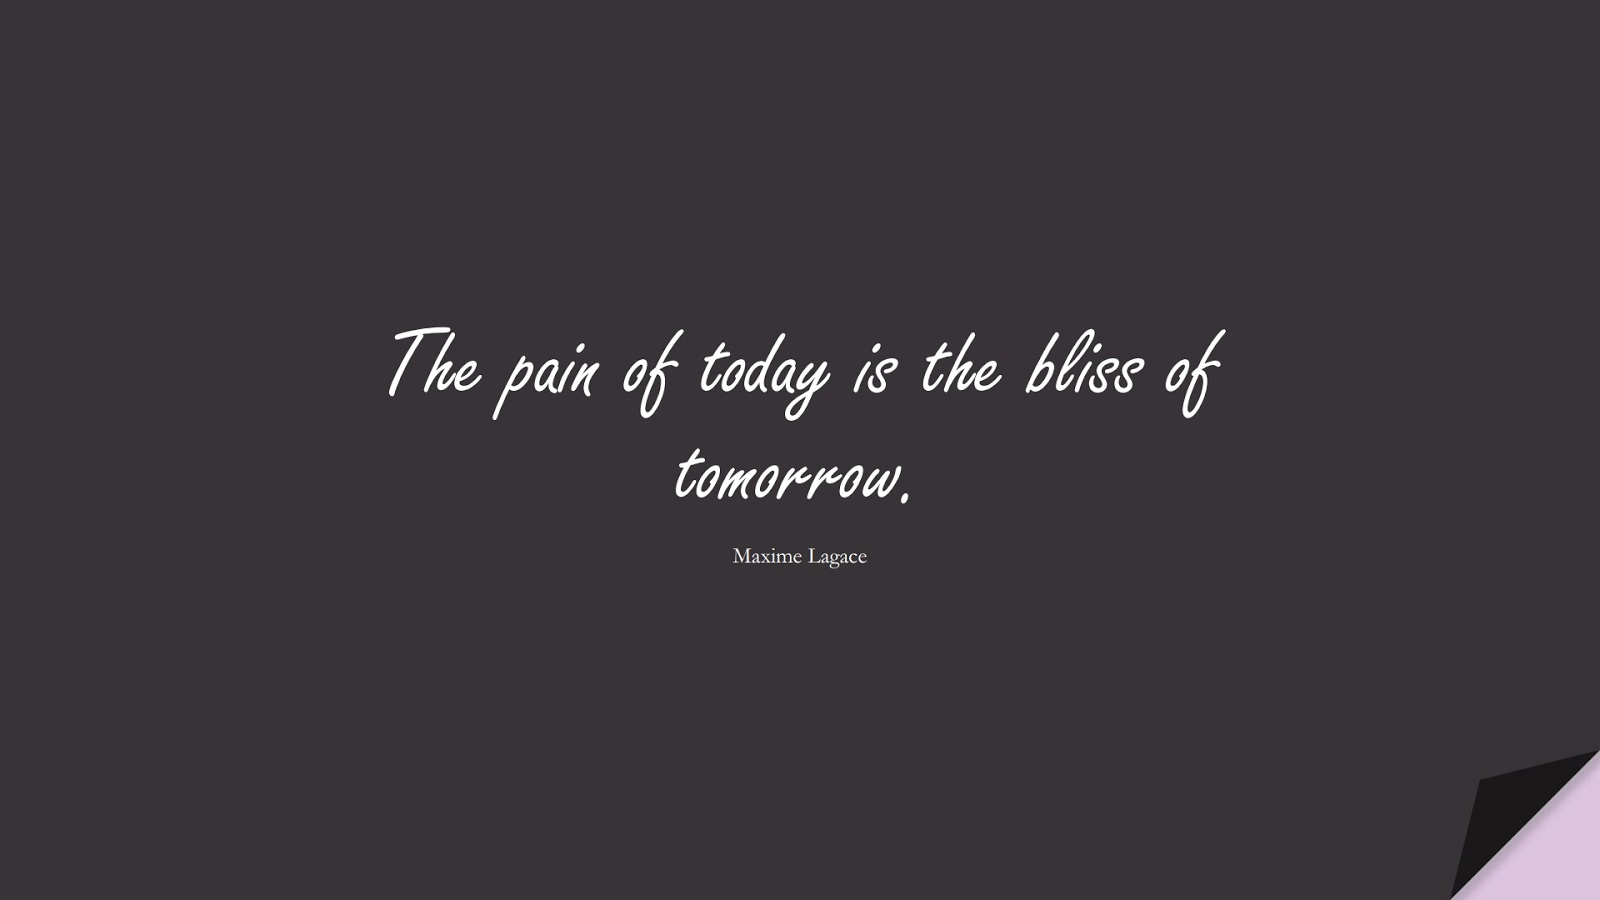 The pain of today is the bliss of tomorrow. (Maxime Lagace);  #NeverGiveUpQuotes